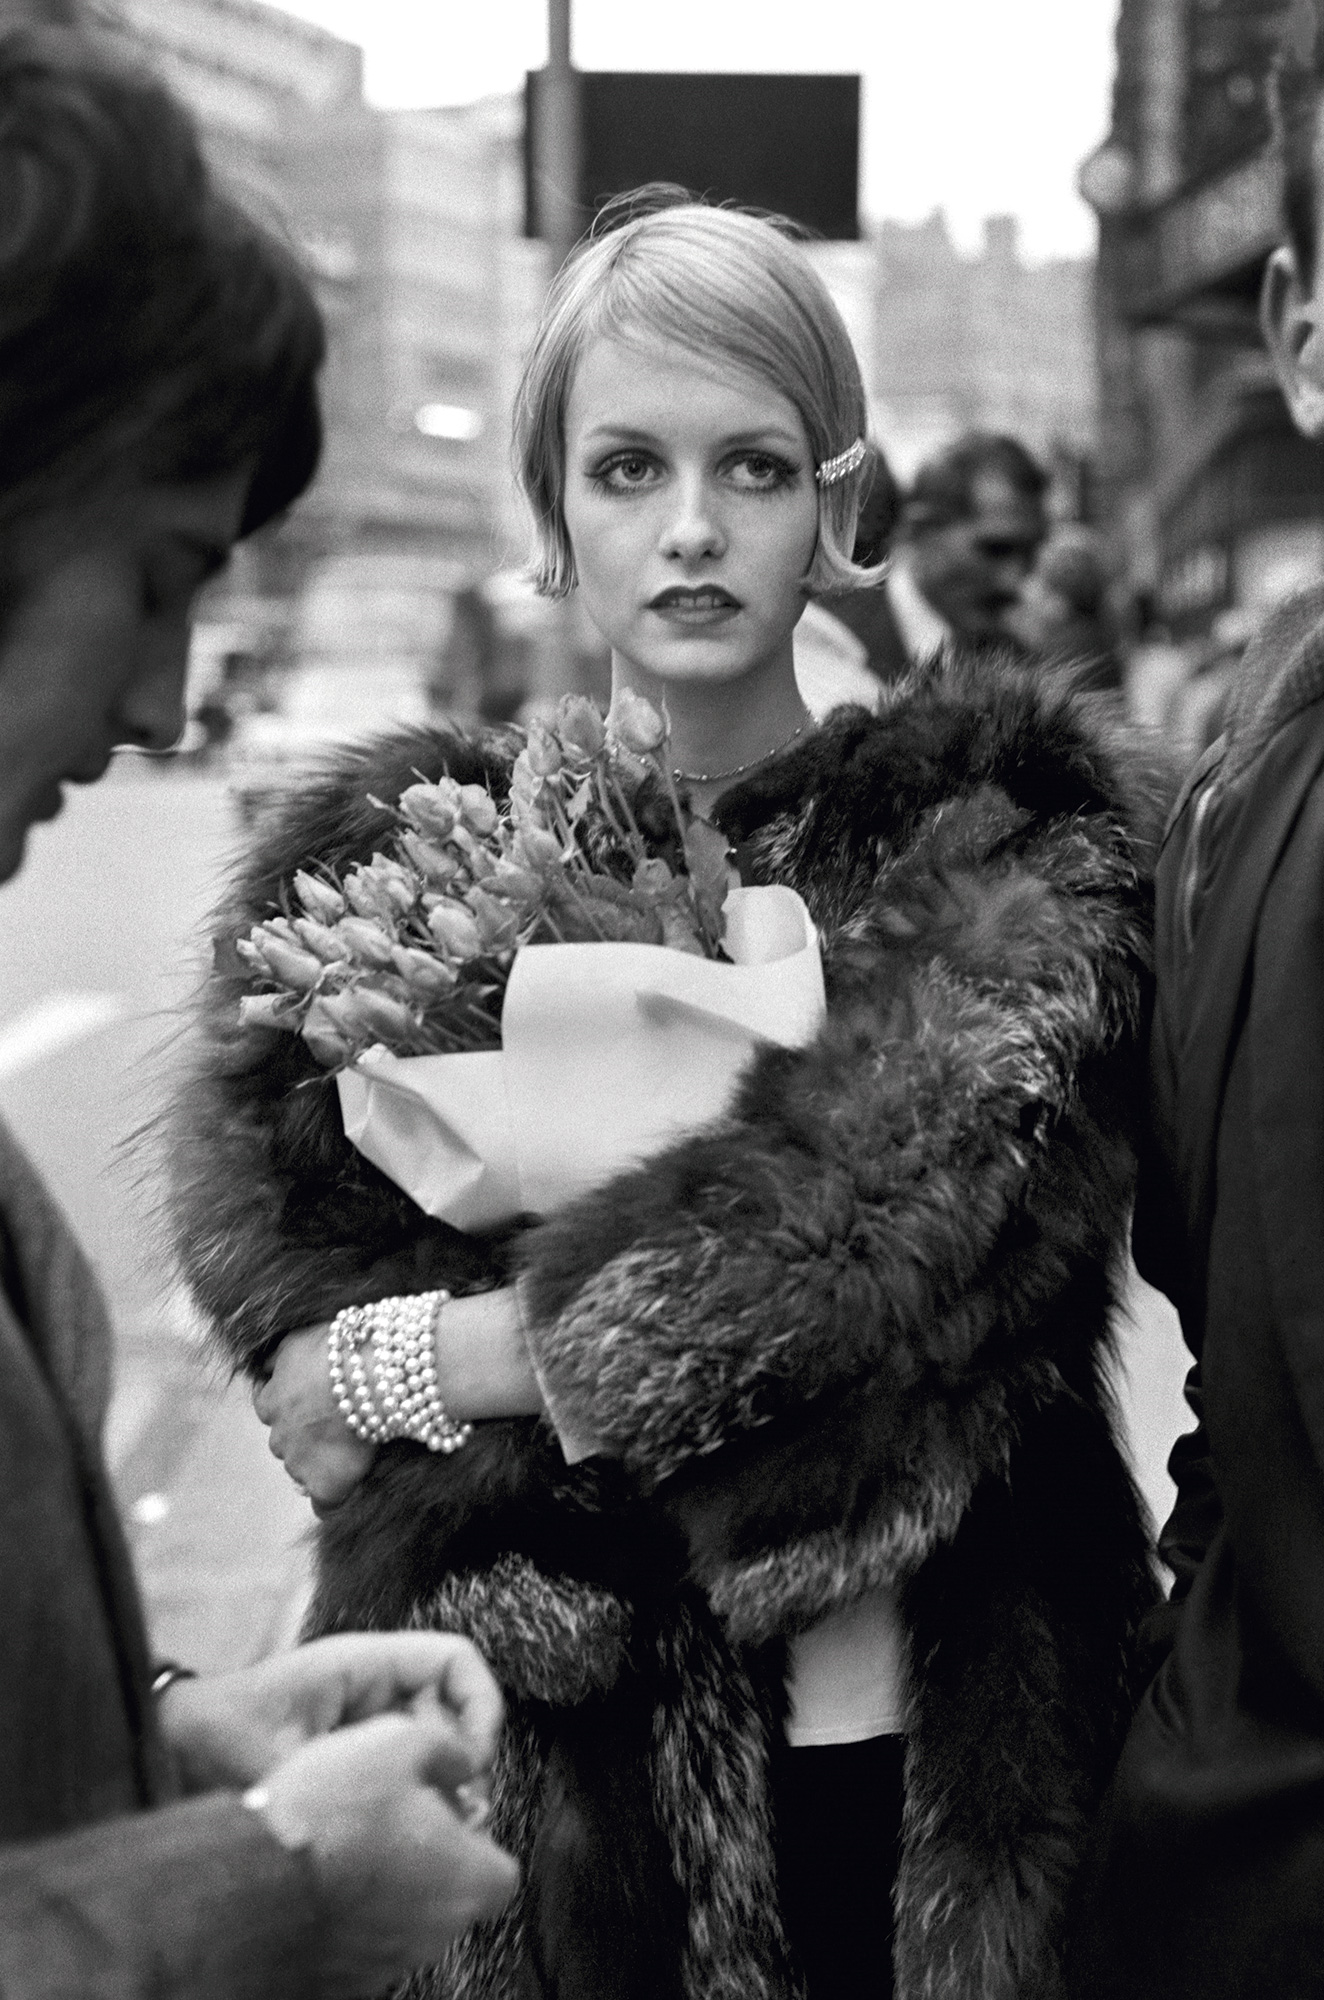 Terry O'Neill/Iconic Images: Twiggy in Knightsbridge, London, 1964